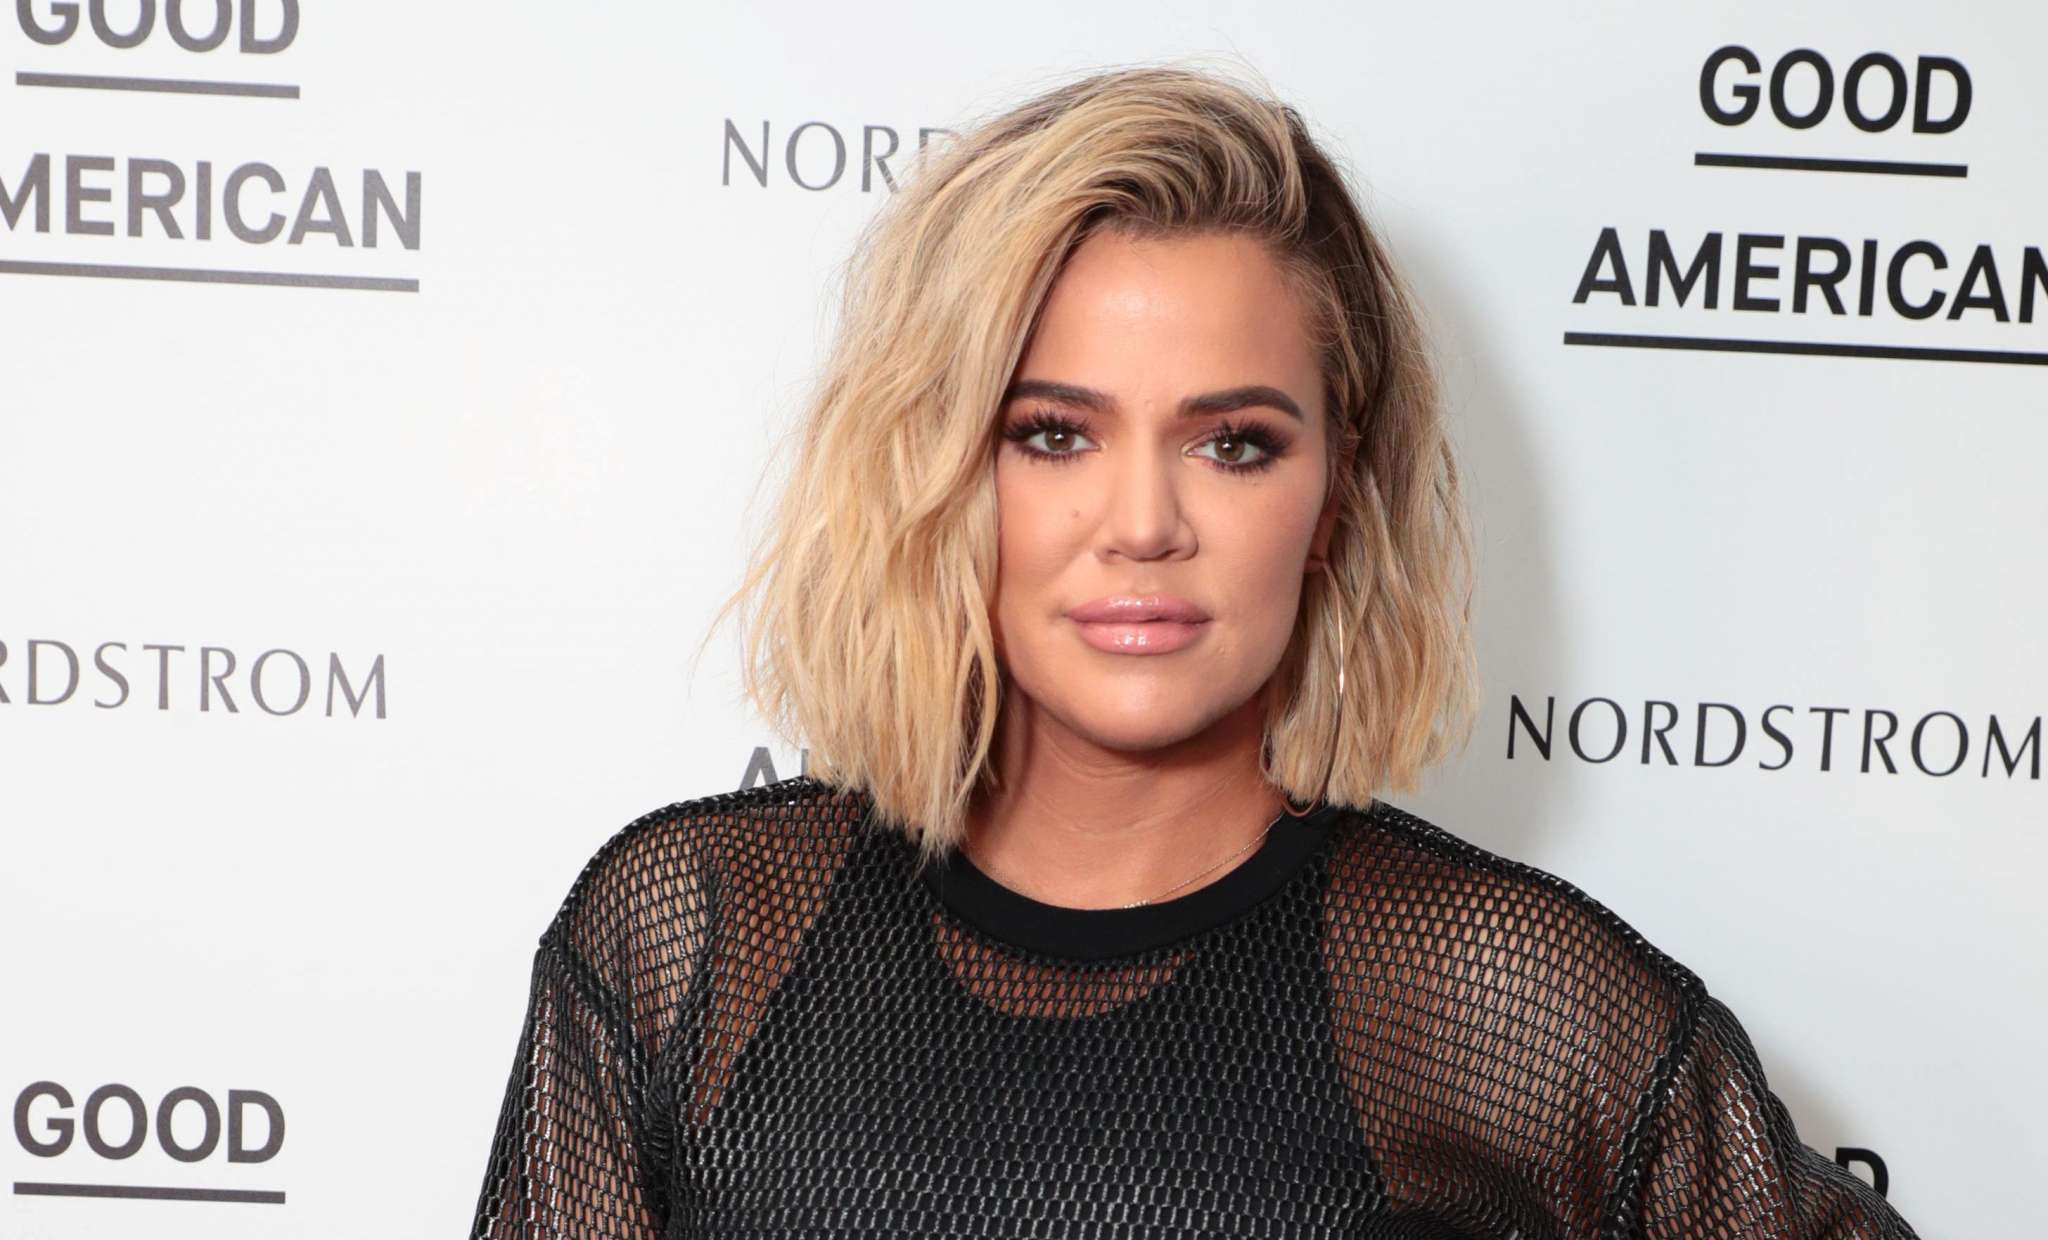 Khloe Kardashian Was Reportedly Warned About Tristan's Cheating Before The Jordyn Woods Drama - Watch The Prediction In The Video